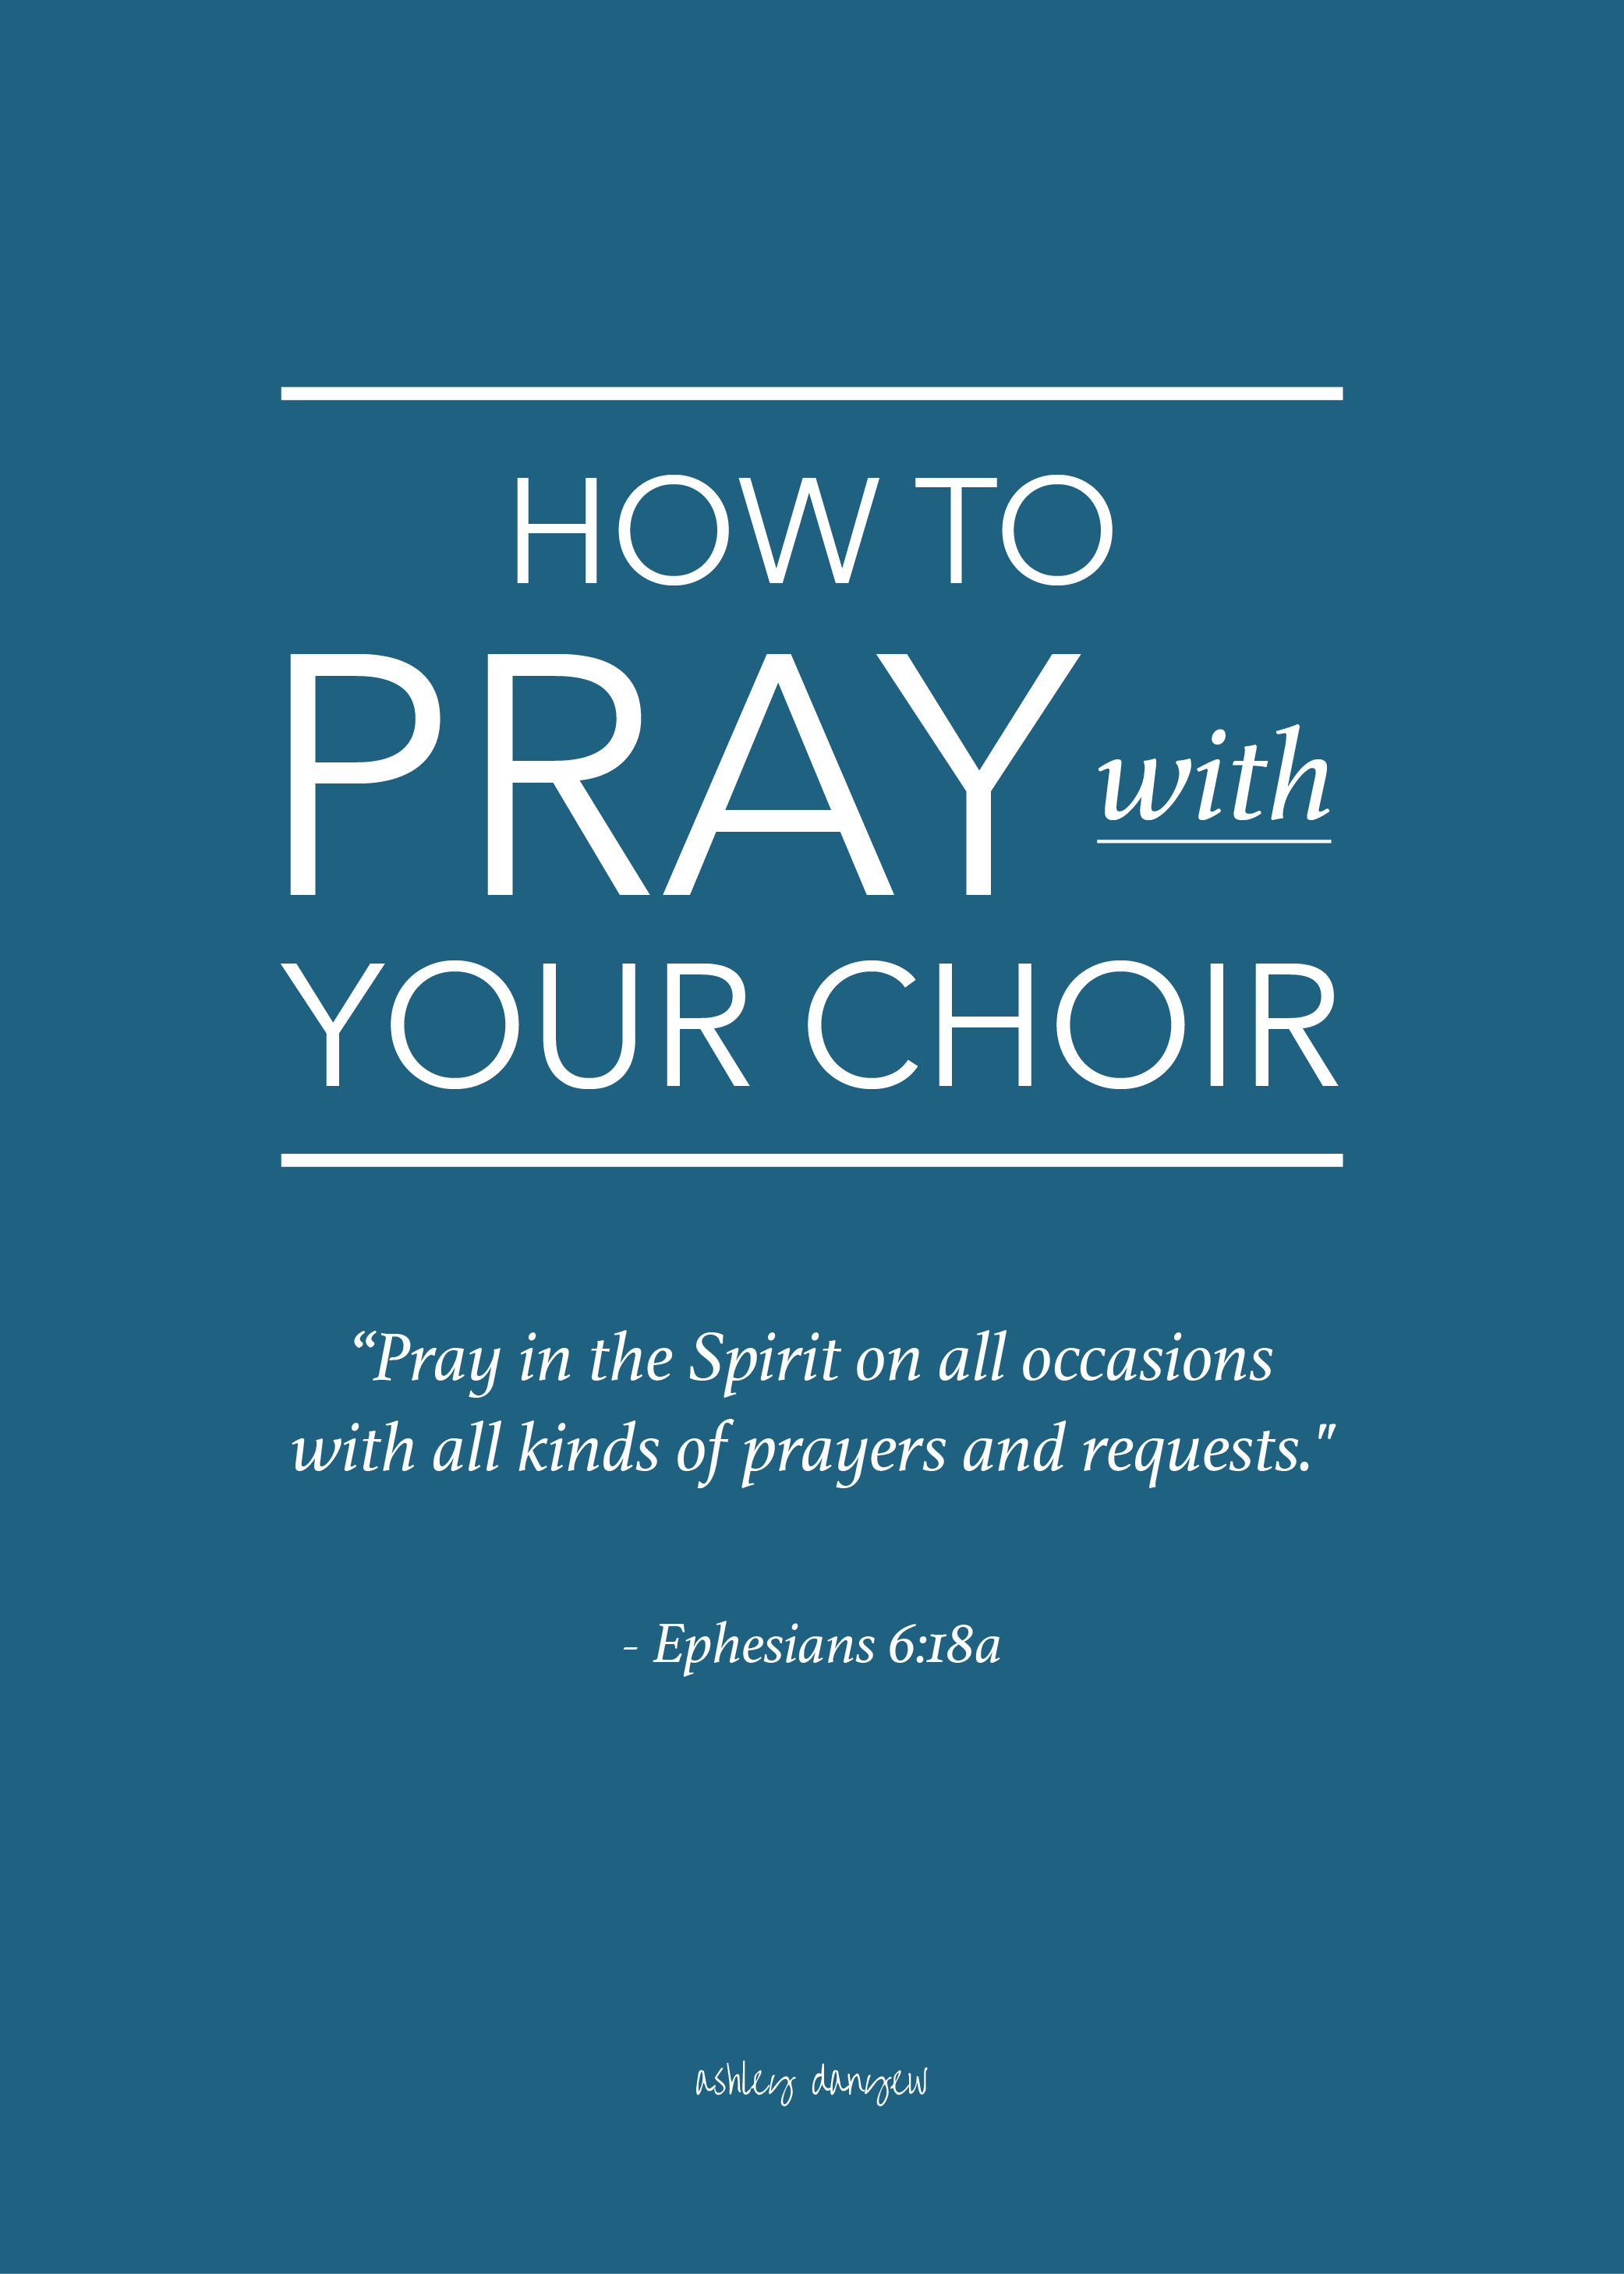 how to pray with your choir | ashley danyew